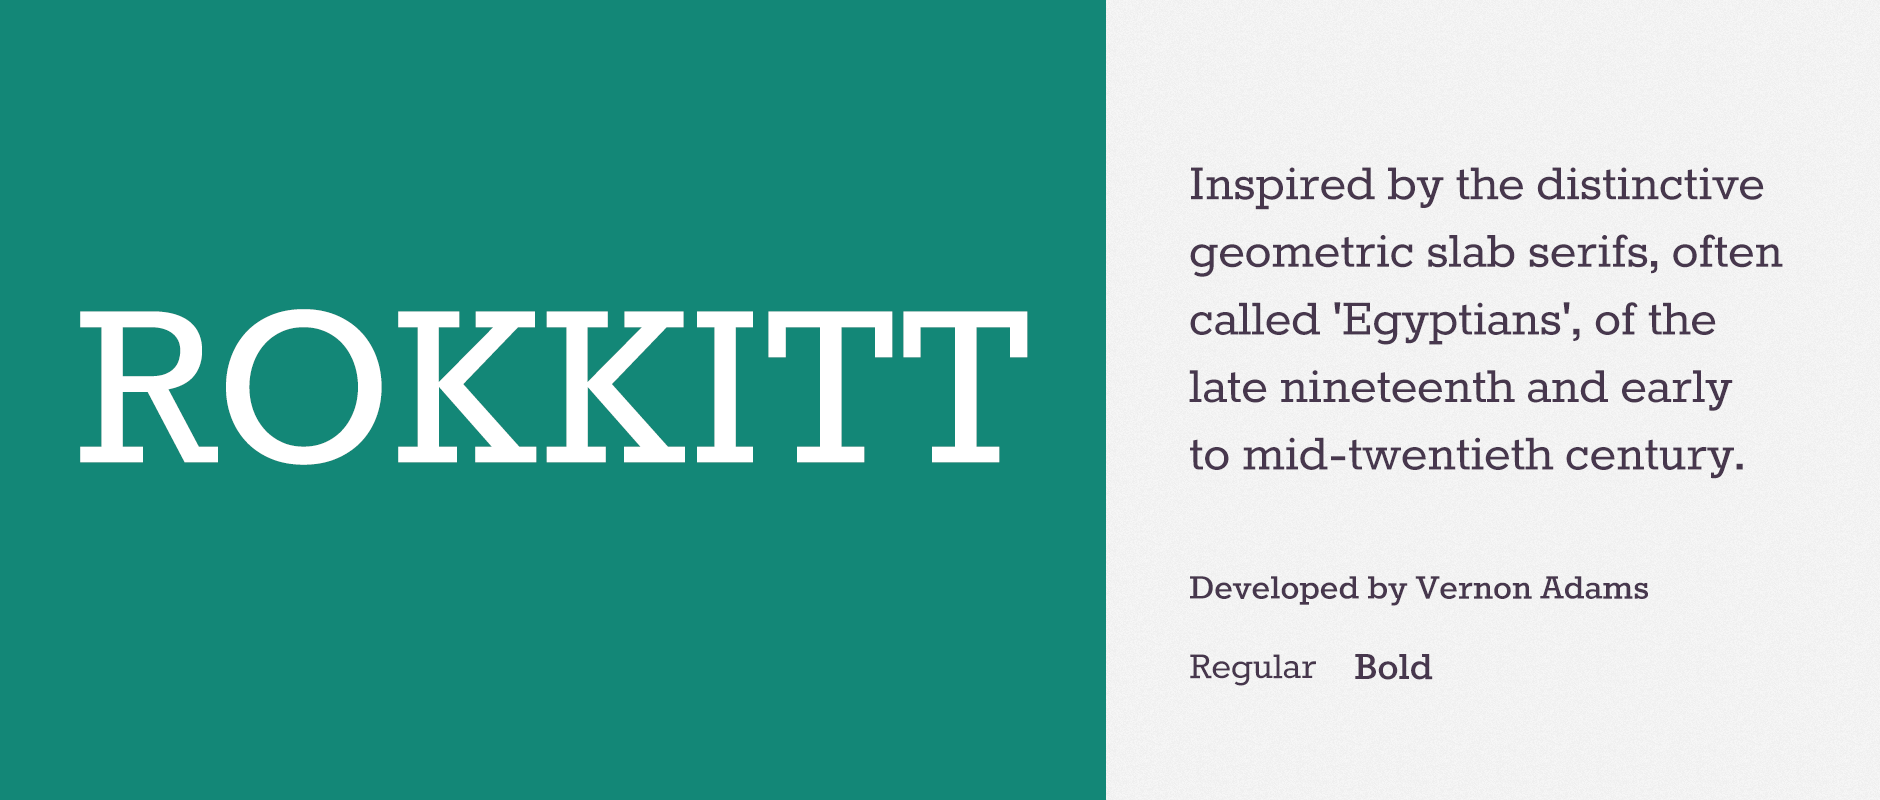 Rokkit  Inspired by the distinctive geometric slab serifs, often called 'Egyptians', of the late nineteenth and early to mid-twentieth century, Rokkit strongly resembles Rockwell. That's not a bad thing. Rokkitt was developed by Vernon Adams, who has also developed many other Google Web Fonts. More can be seen here: http://code.newtypography.co.uk/